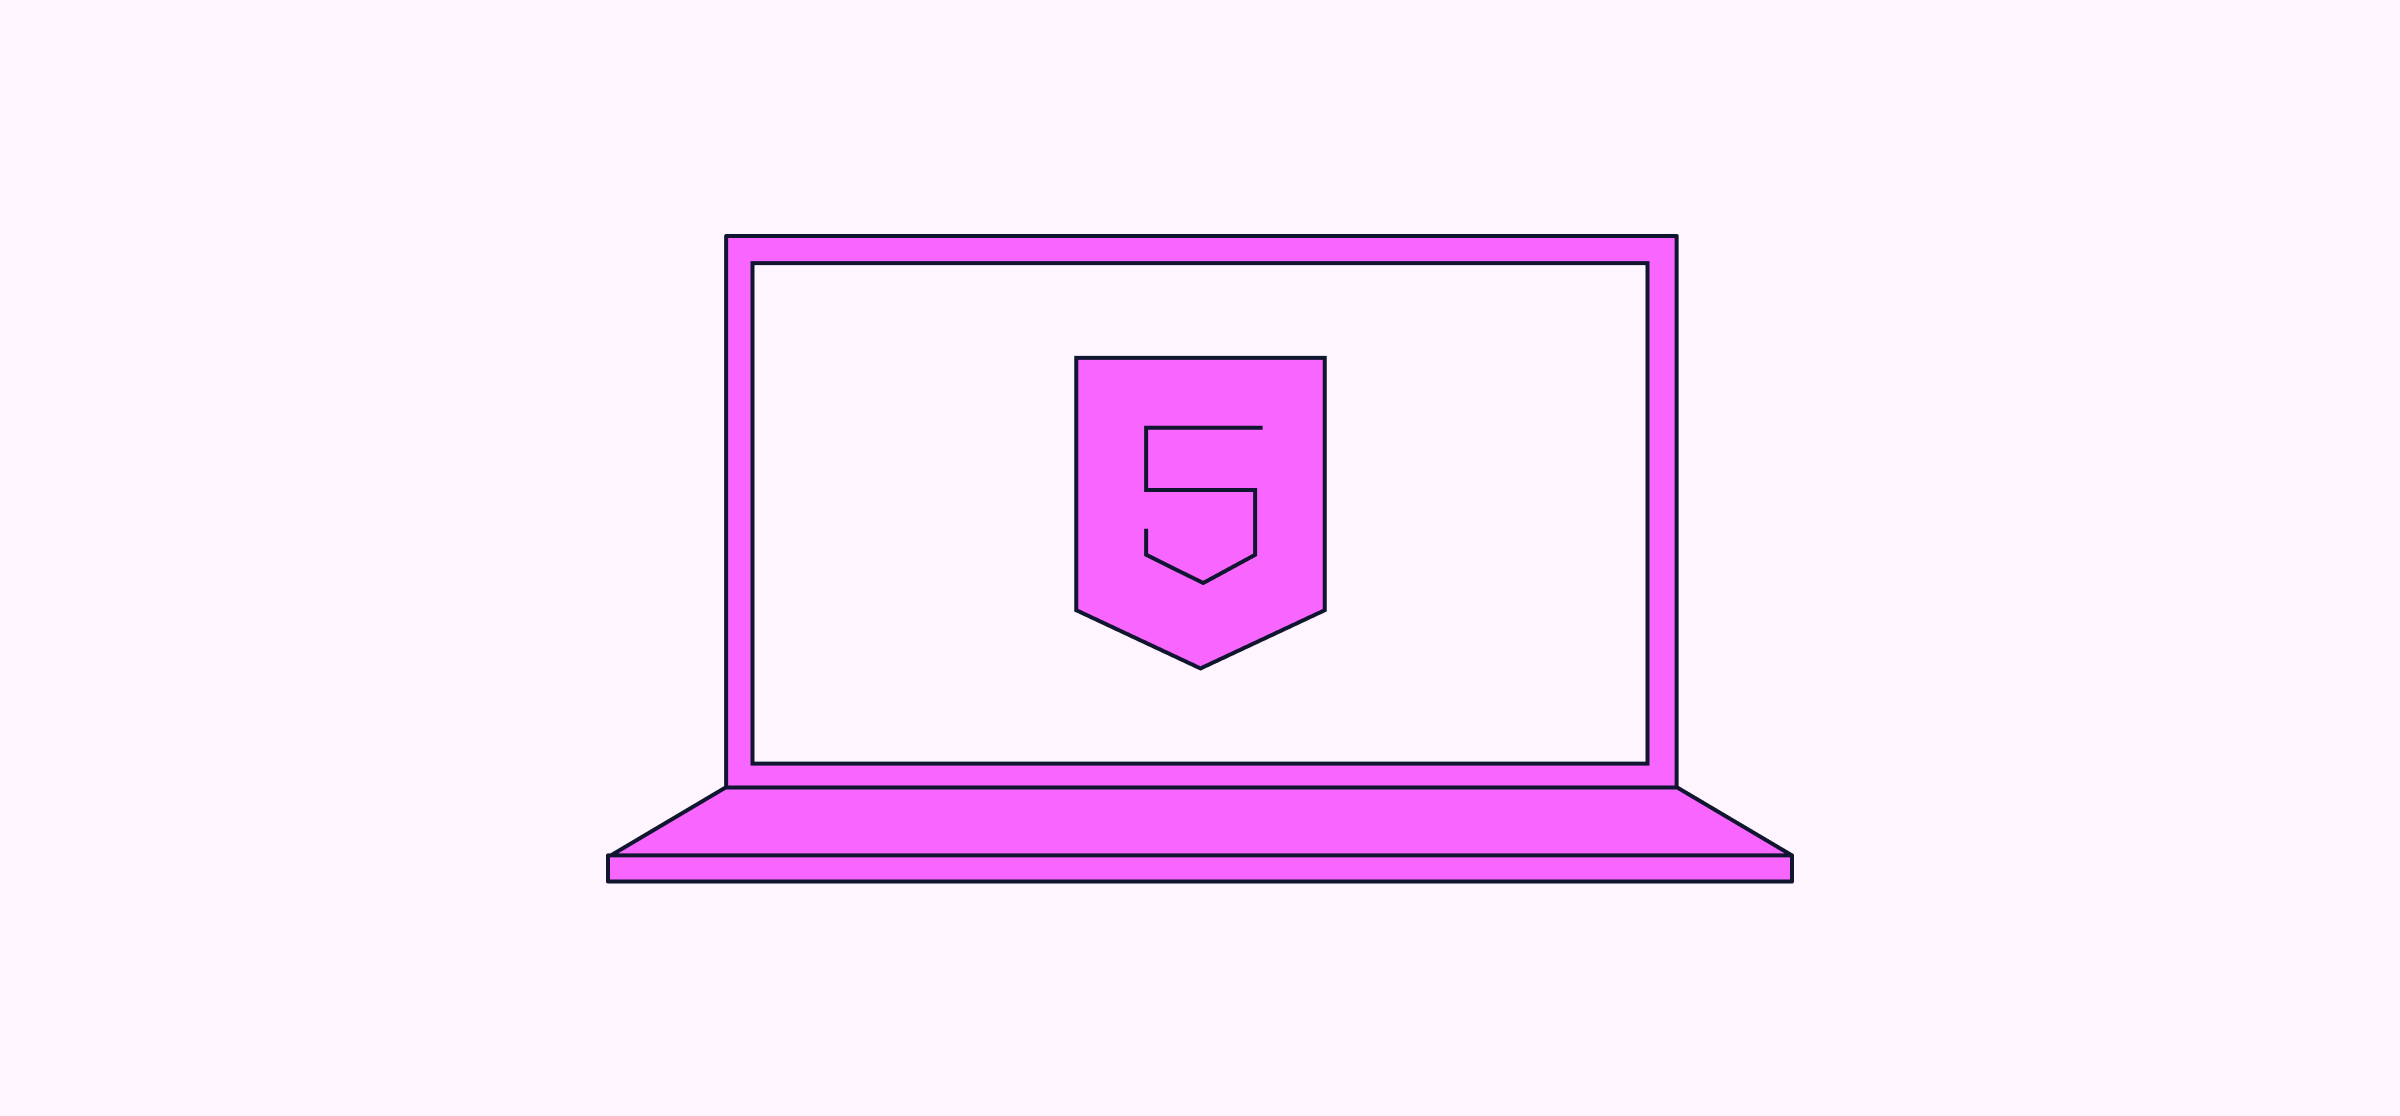 7 reasons why you'll be glad you learned HTML